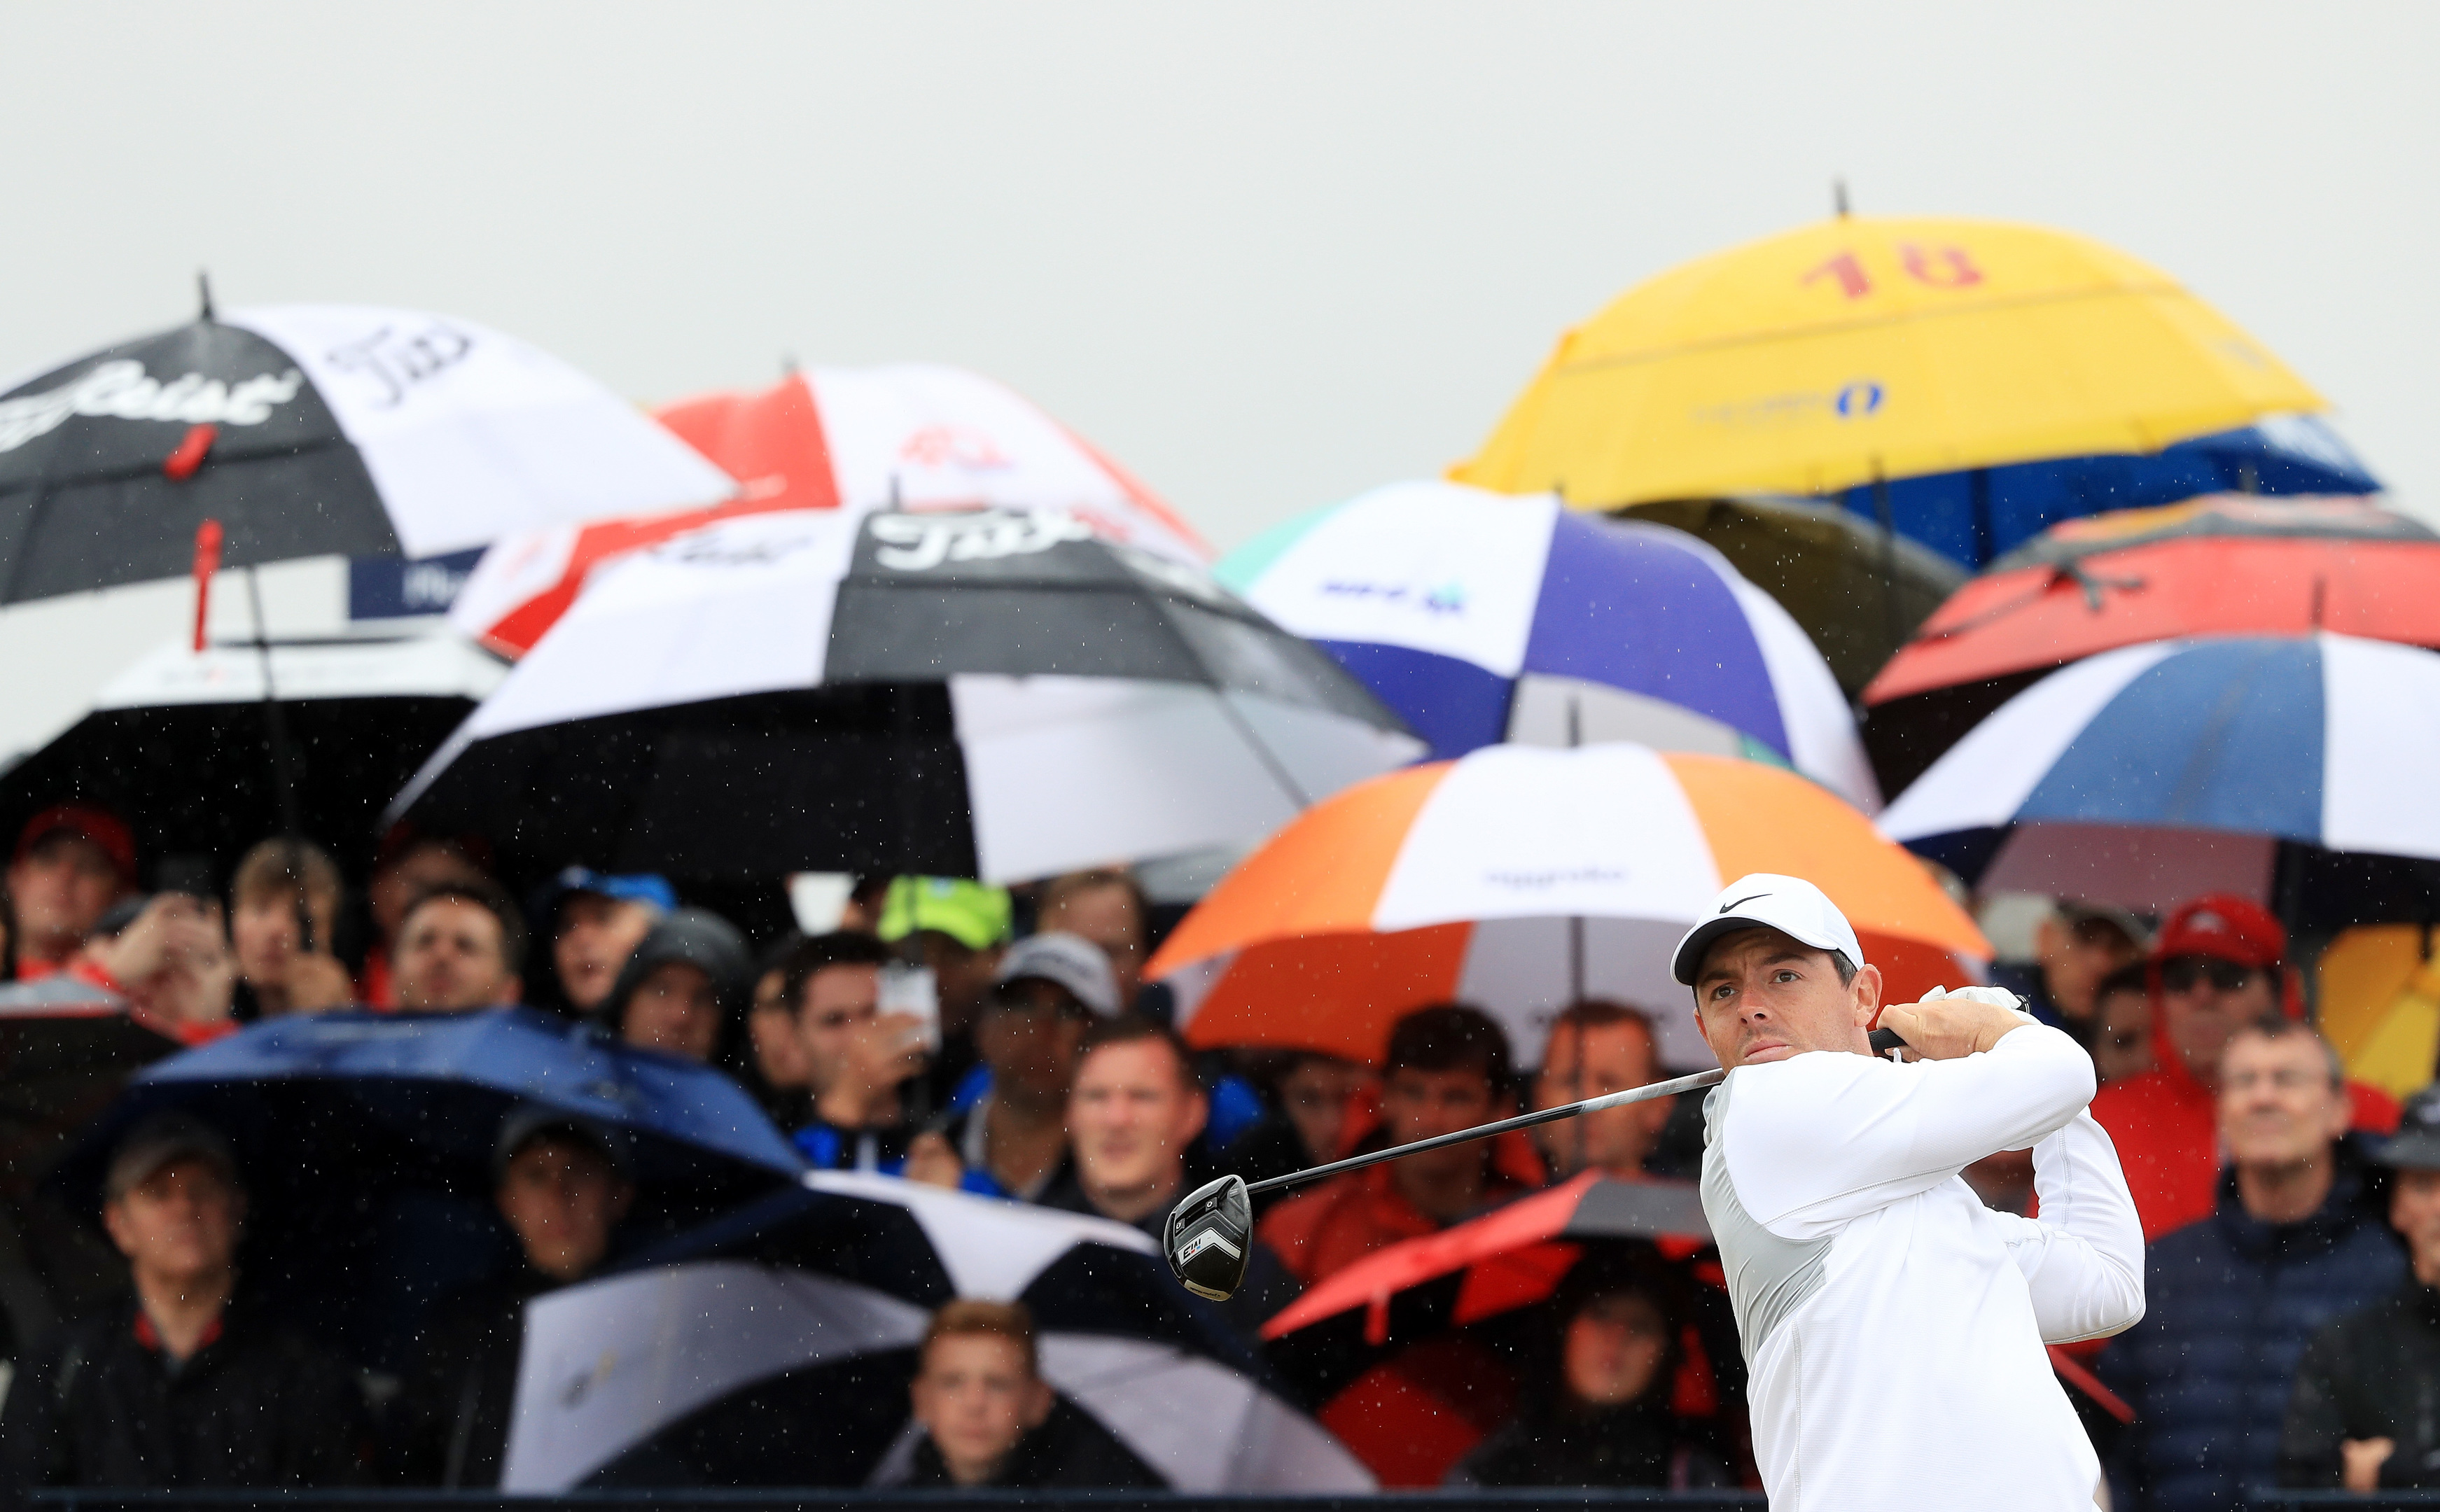 Rory McIlroy framed by the umbrellas during the morning rain in the second round at Carnoustie.